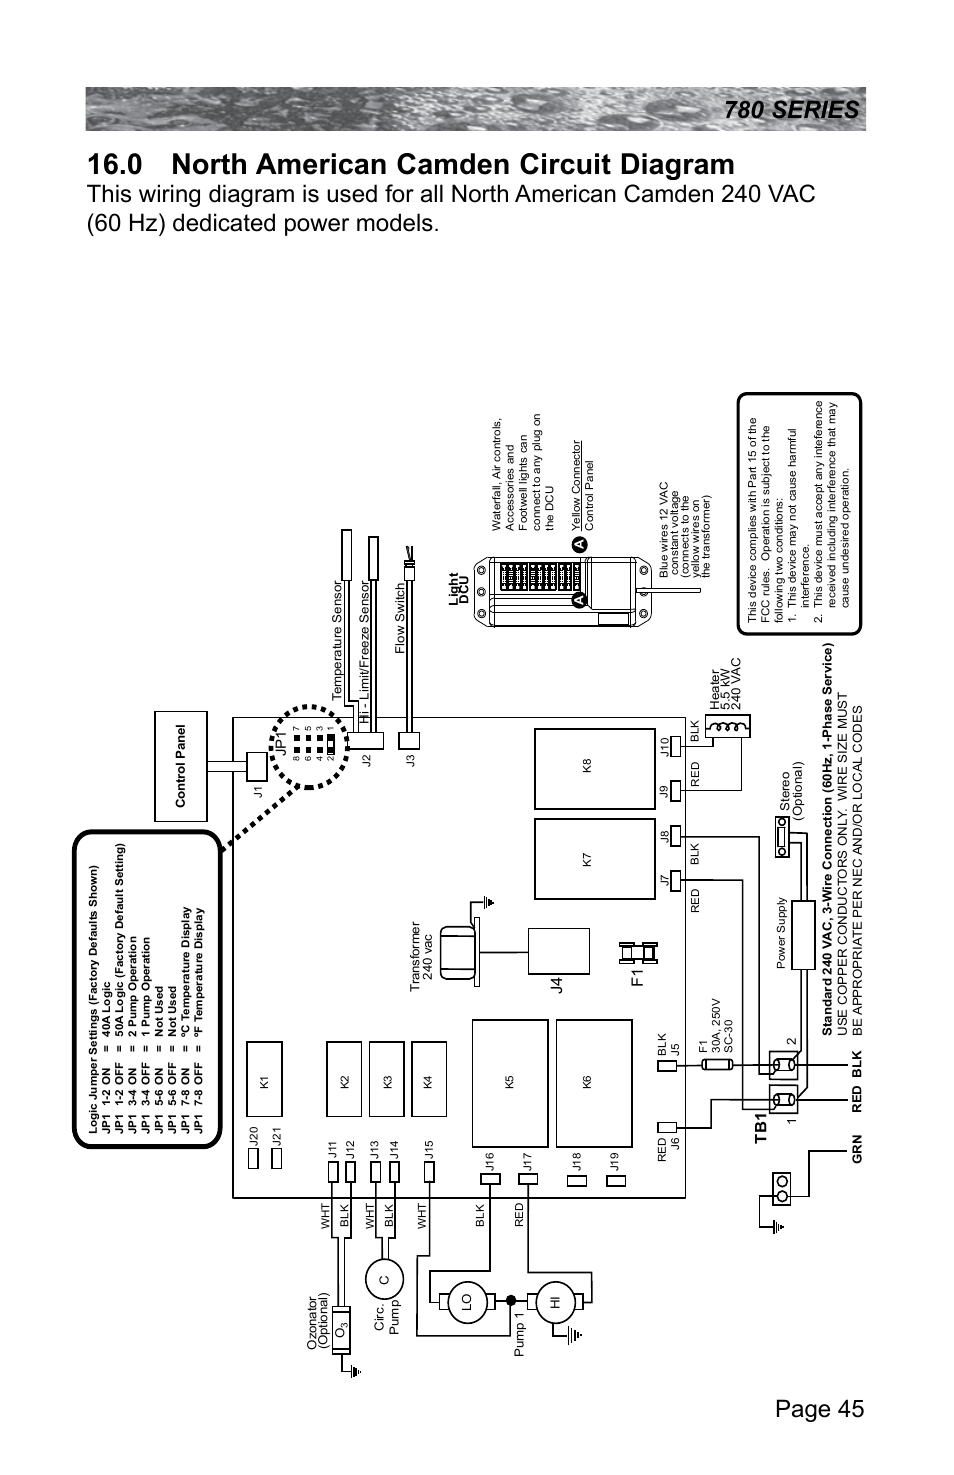 Hot Tub Wiring Diagram Canada from lh6.googleusercontent.com